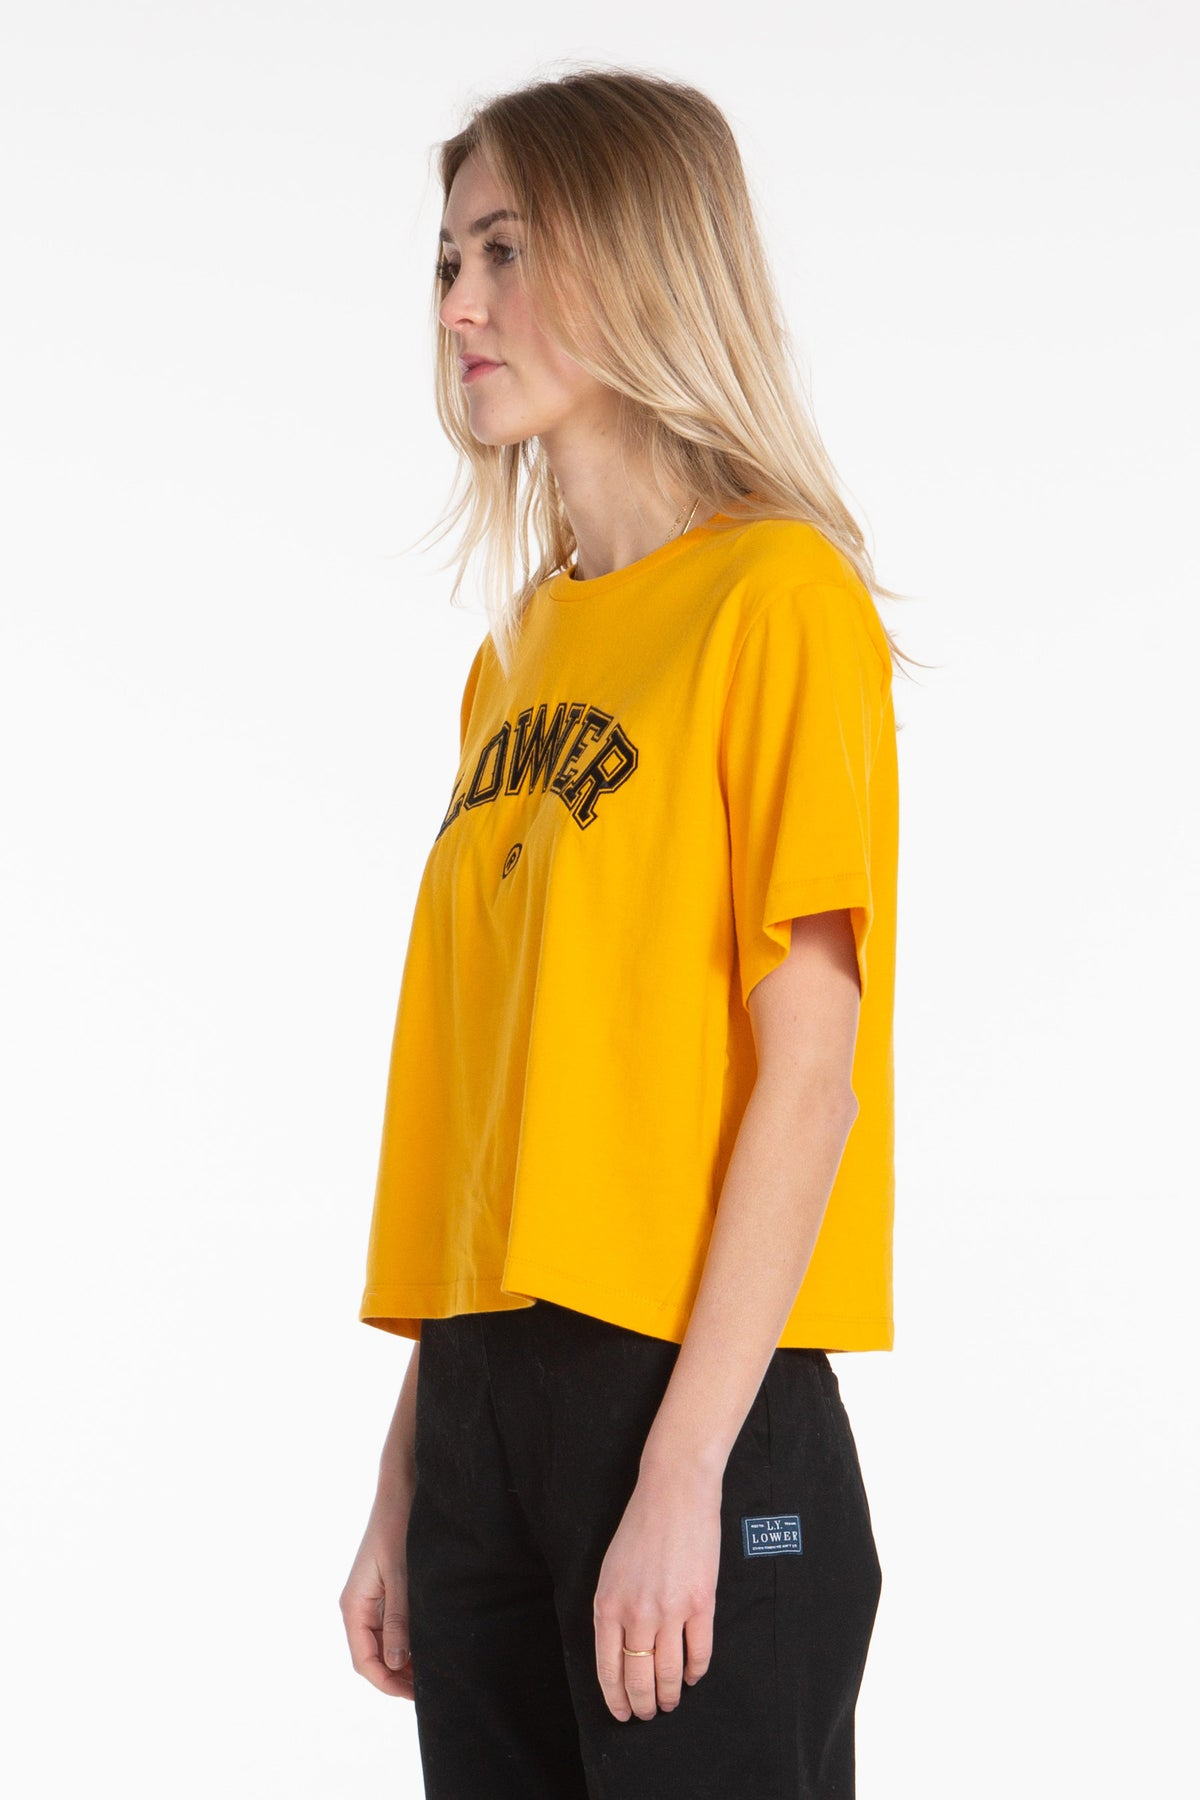 Playground Cropped Tee - Gold